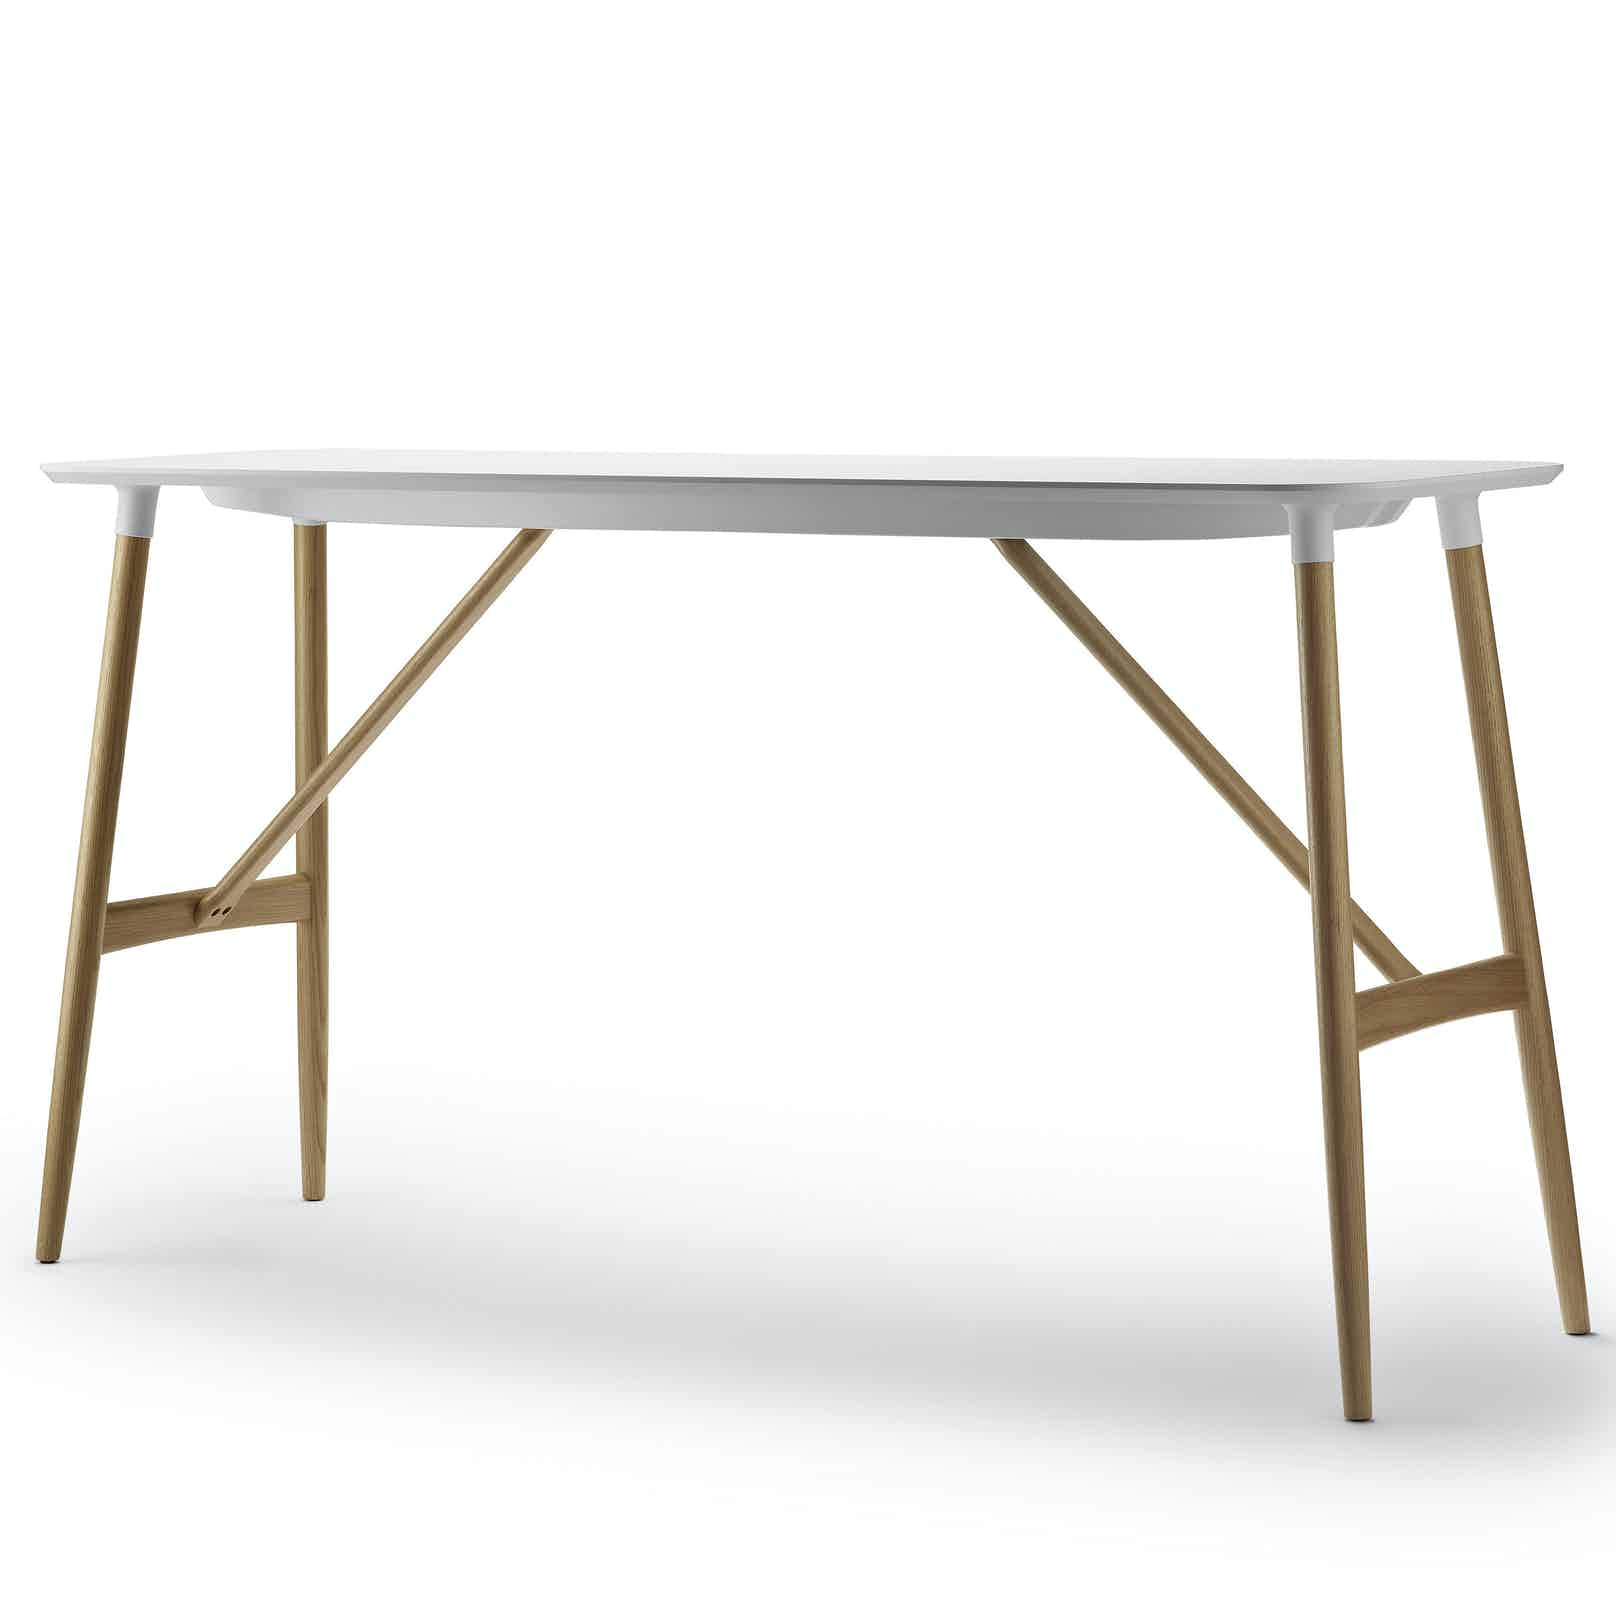 Carl-hansen-son-white-bar-table-preludia-haute-livingjpg